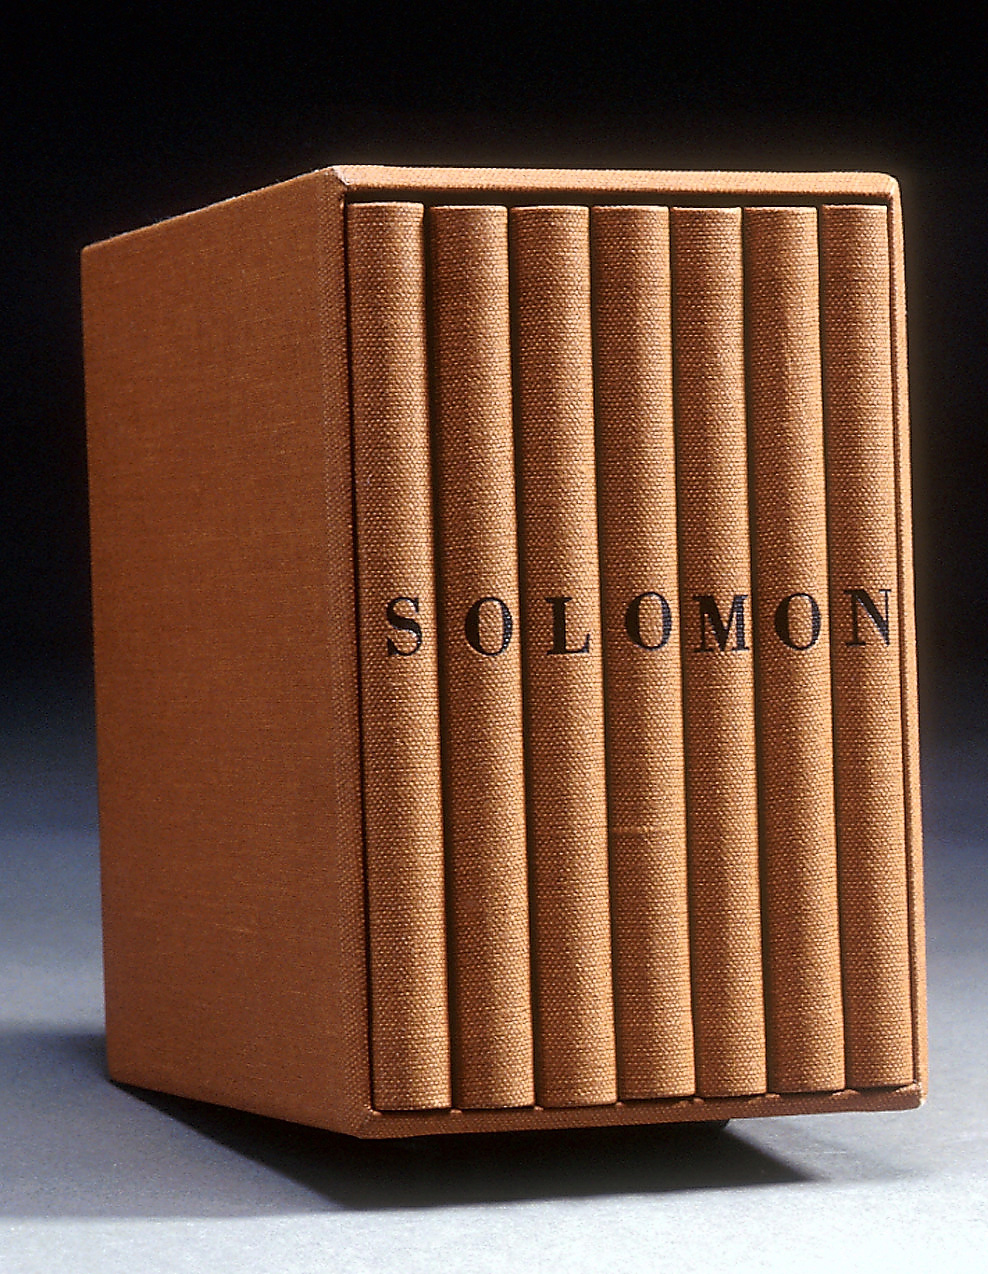 Jan Davis (1952-), Solomon, 1995, 7 volume artist book in casement digital print, 14.7 x 9.7 x 14, no. 936